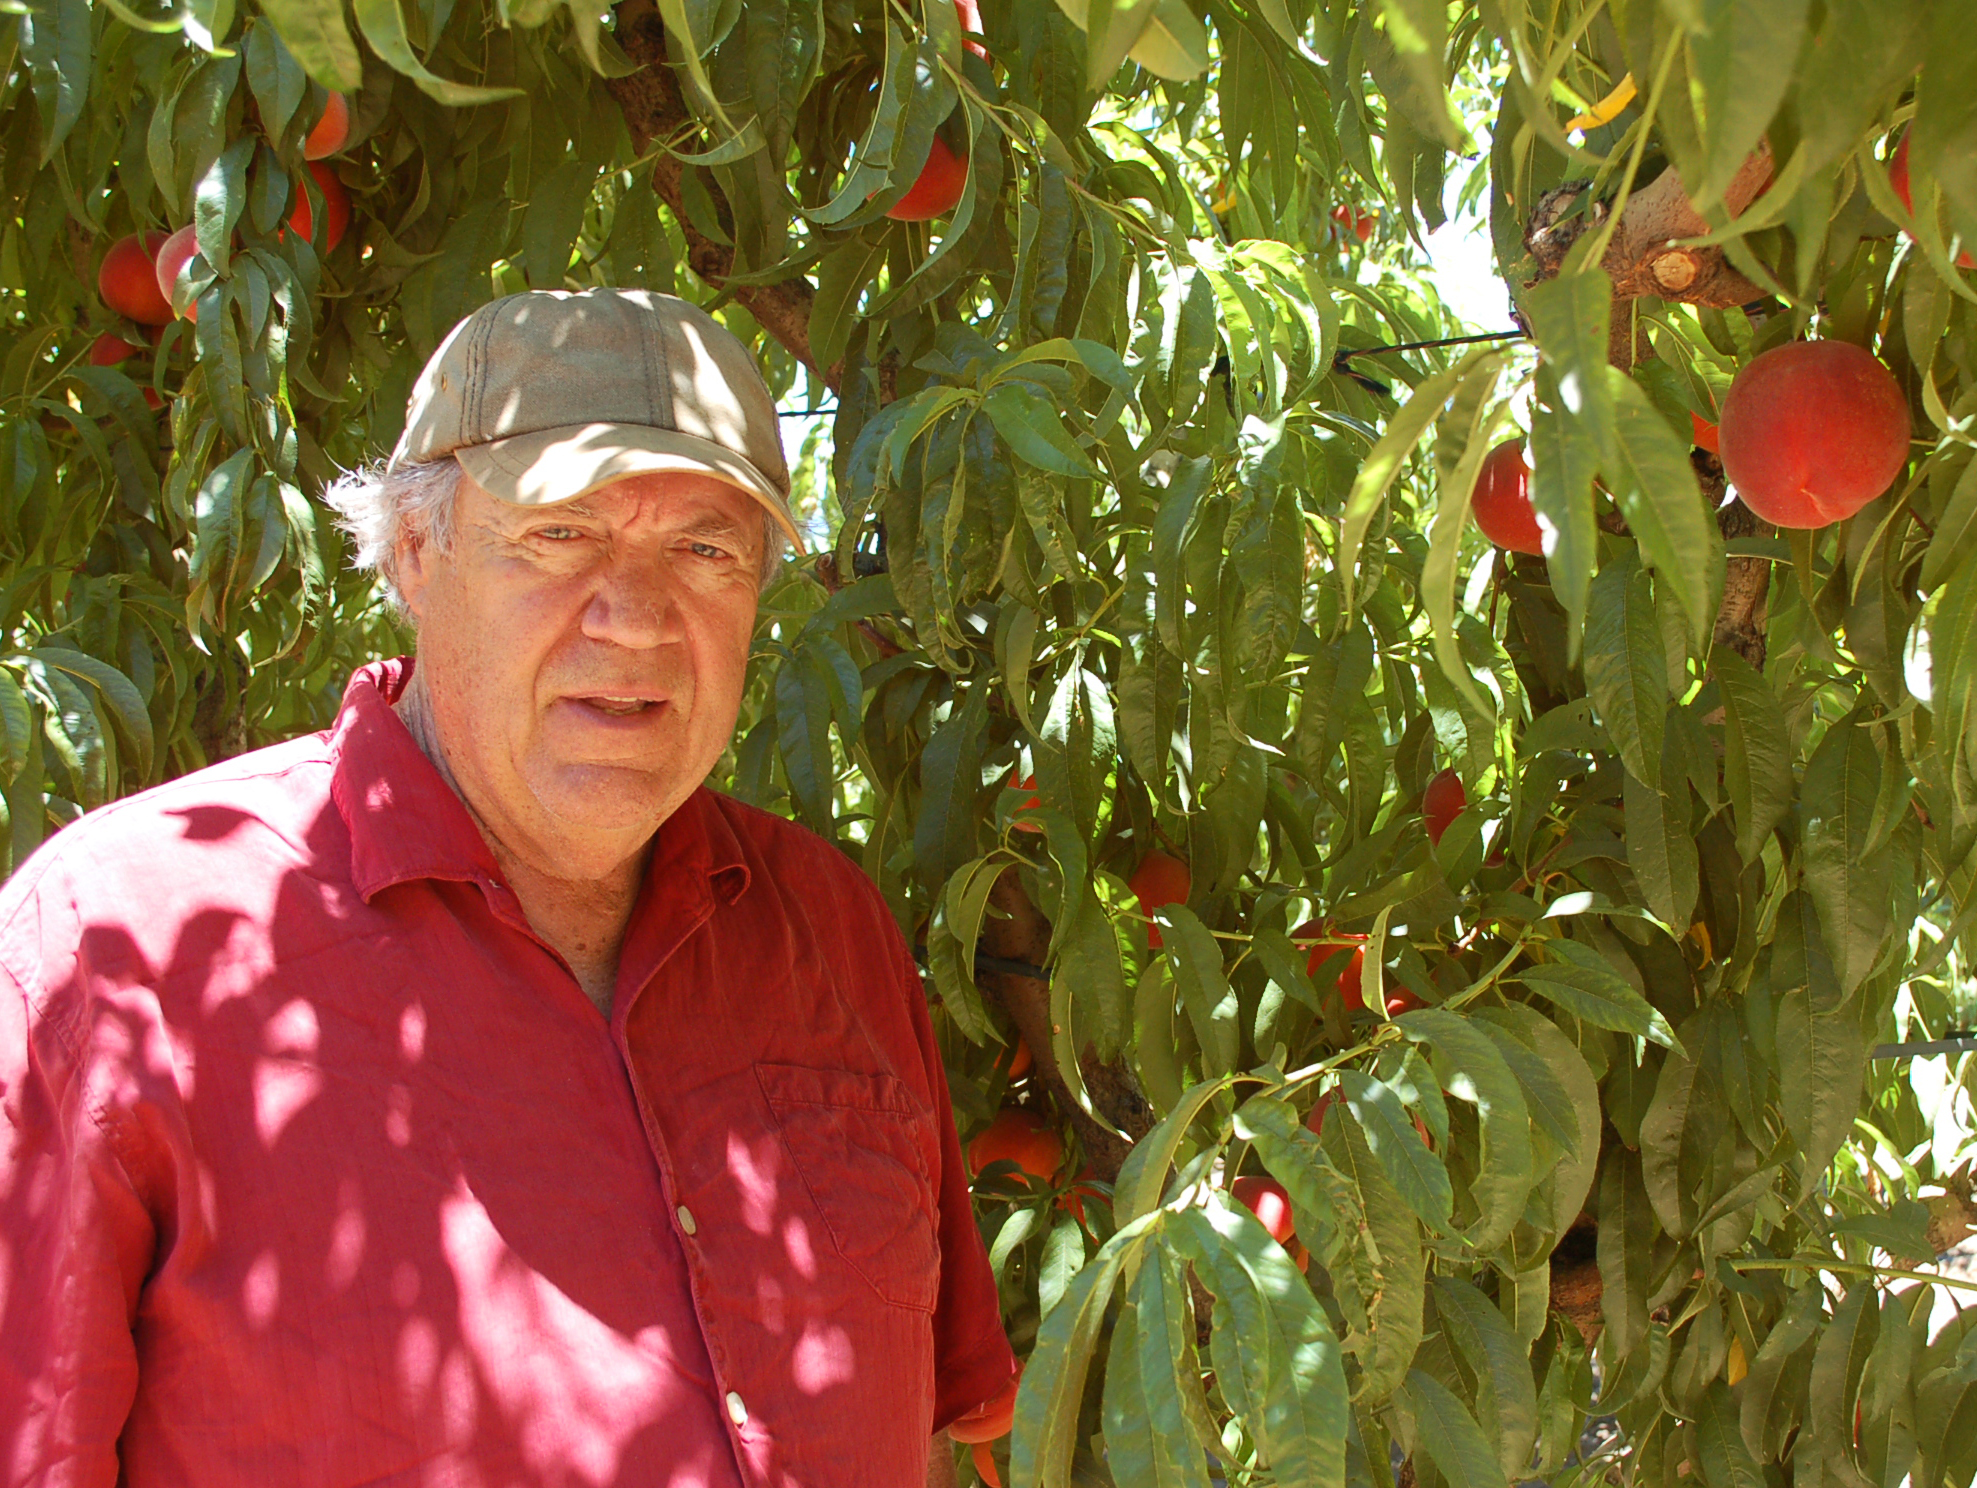 Andy Mariani has the largest collection of heirloom stone fruit on the West Coast. Photo: Susan Hathaway